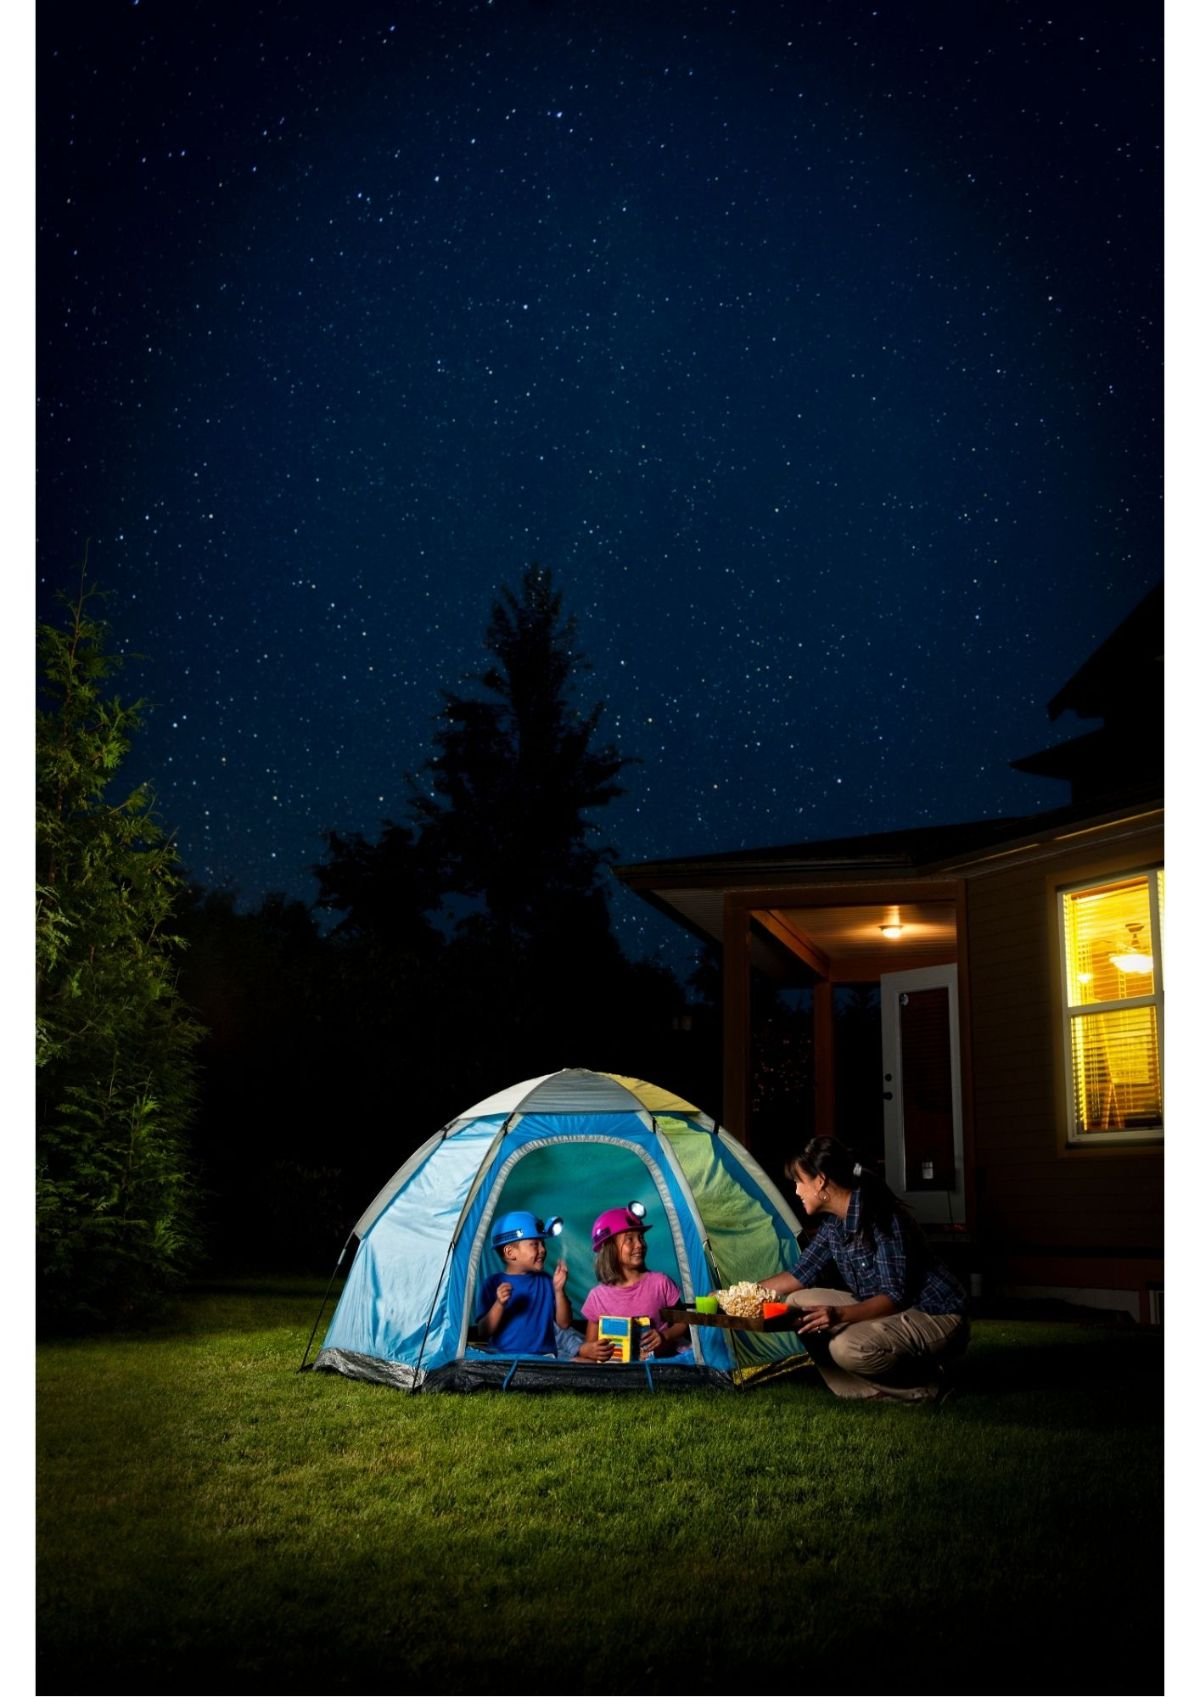 under a night sky, 2 children sit in a pop up tent pitched in their backgarden. Their mom is bringing them food on a tray